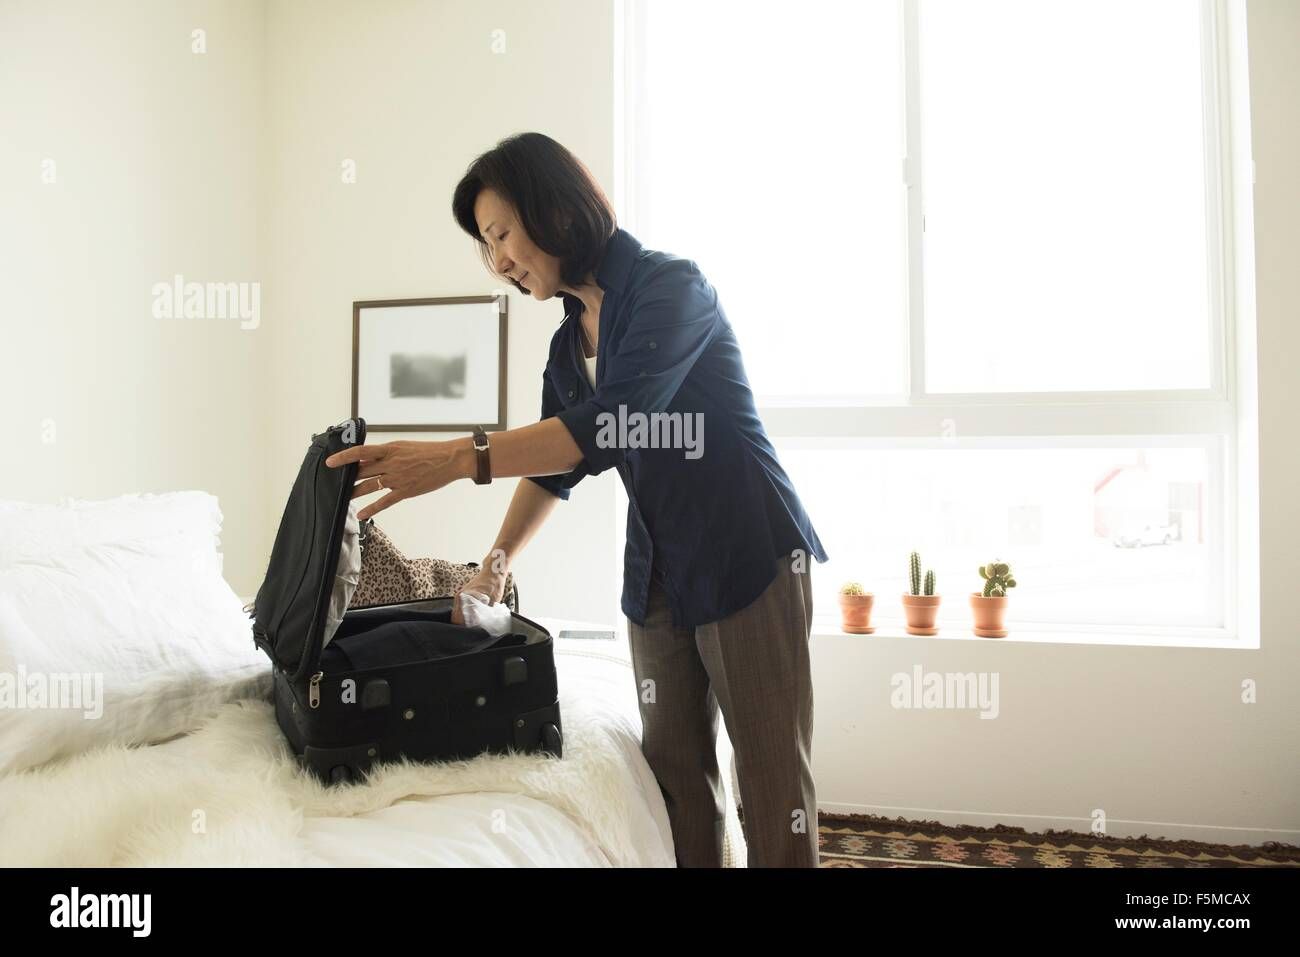 Mature woman standing in hotel room packing suitcase - Stock Image